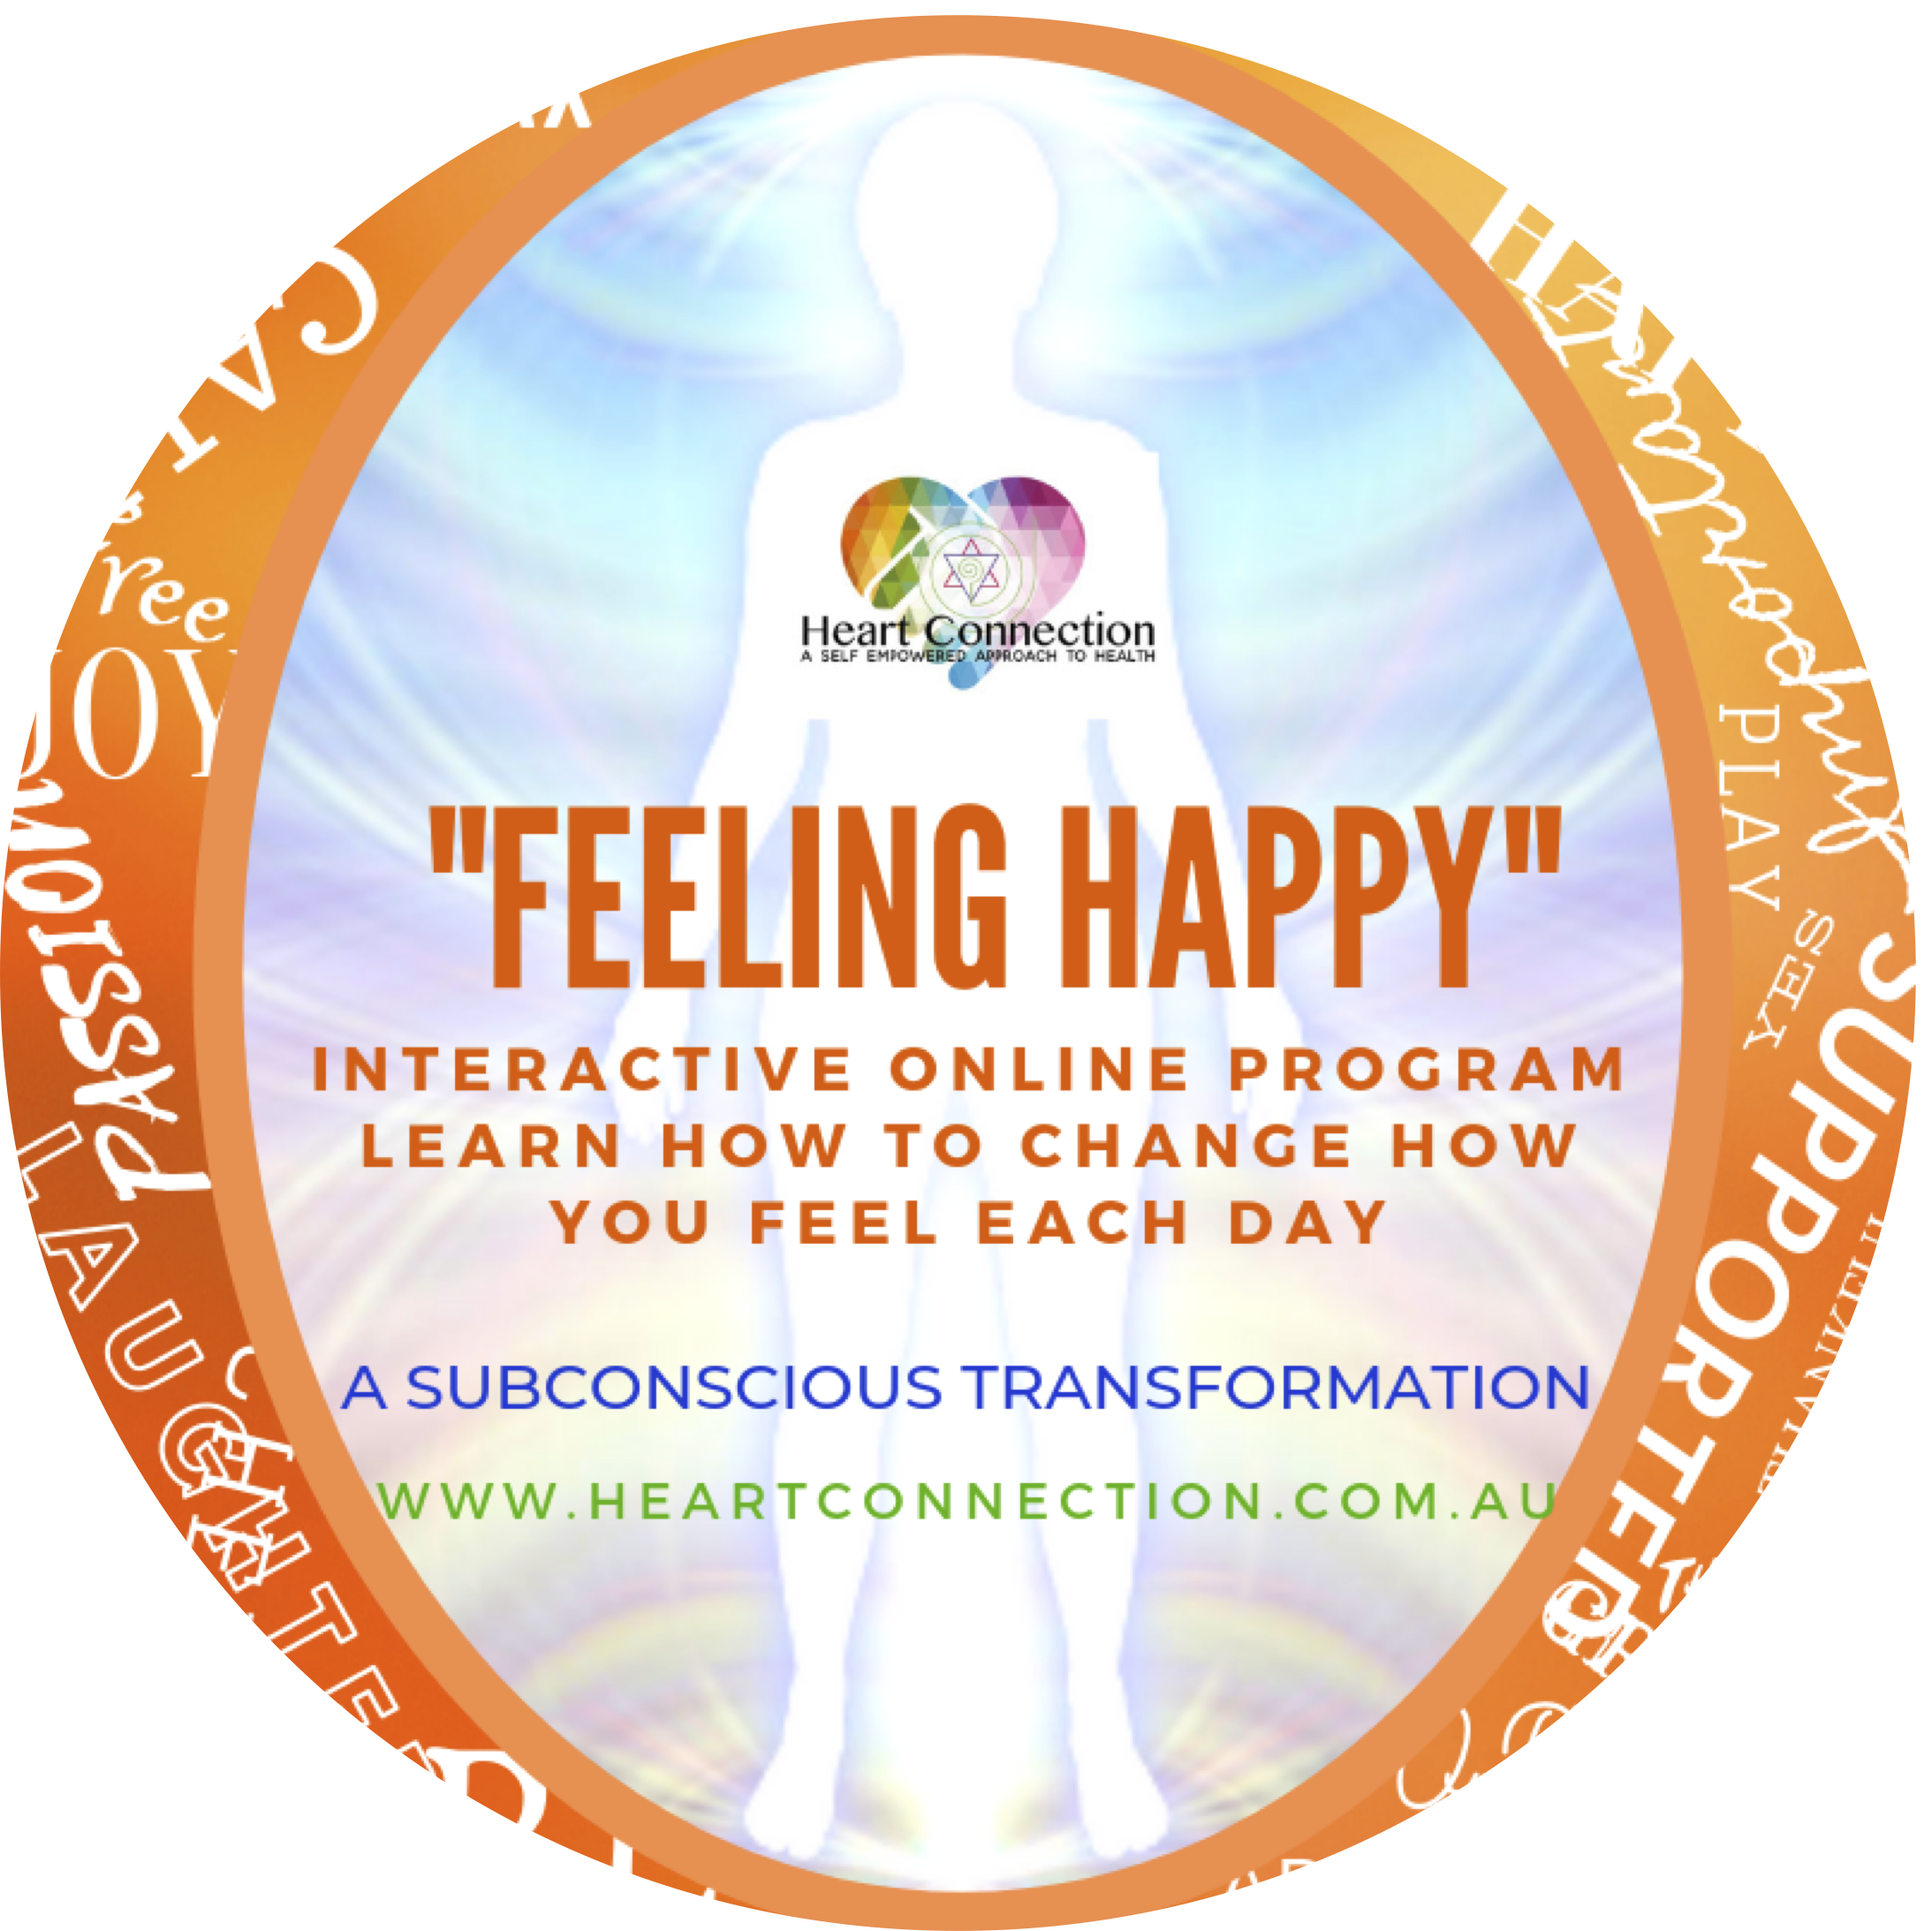 I AM EMPOWERED TO FEEL HAPPY EACH DAY